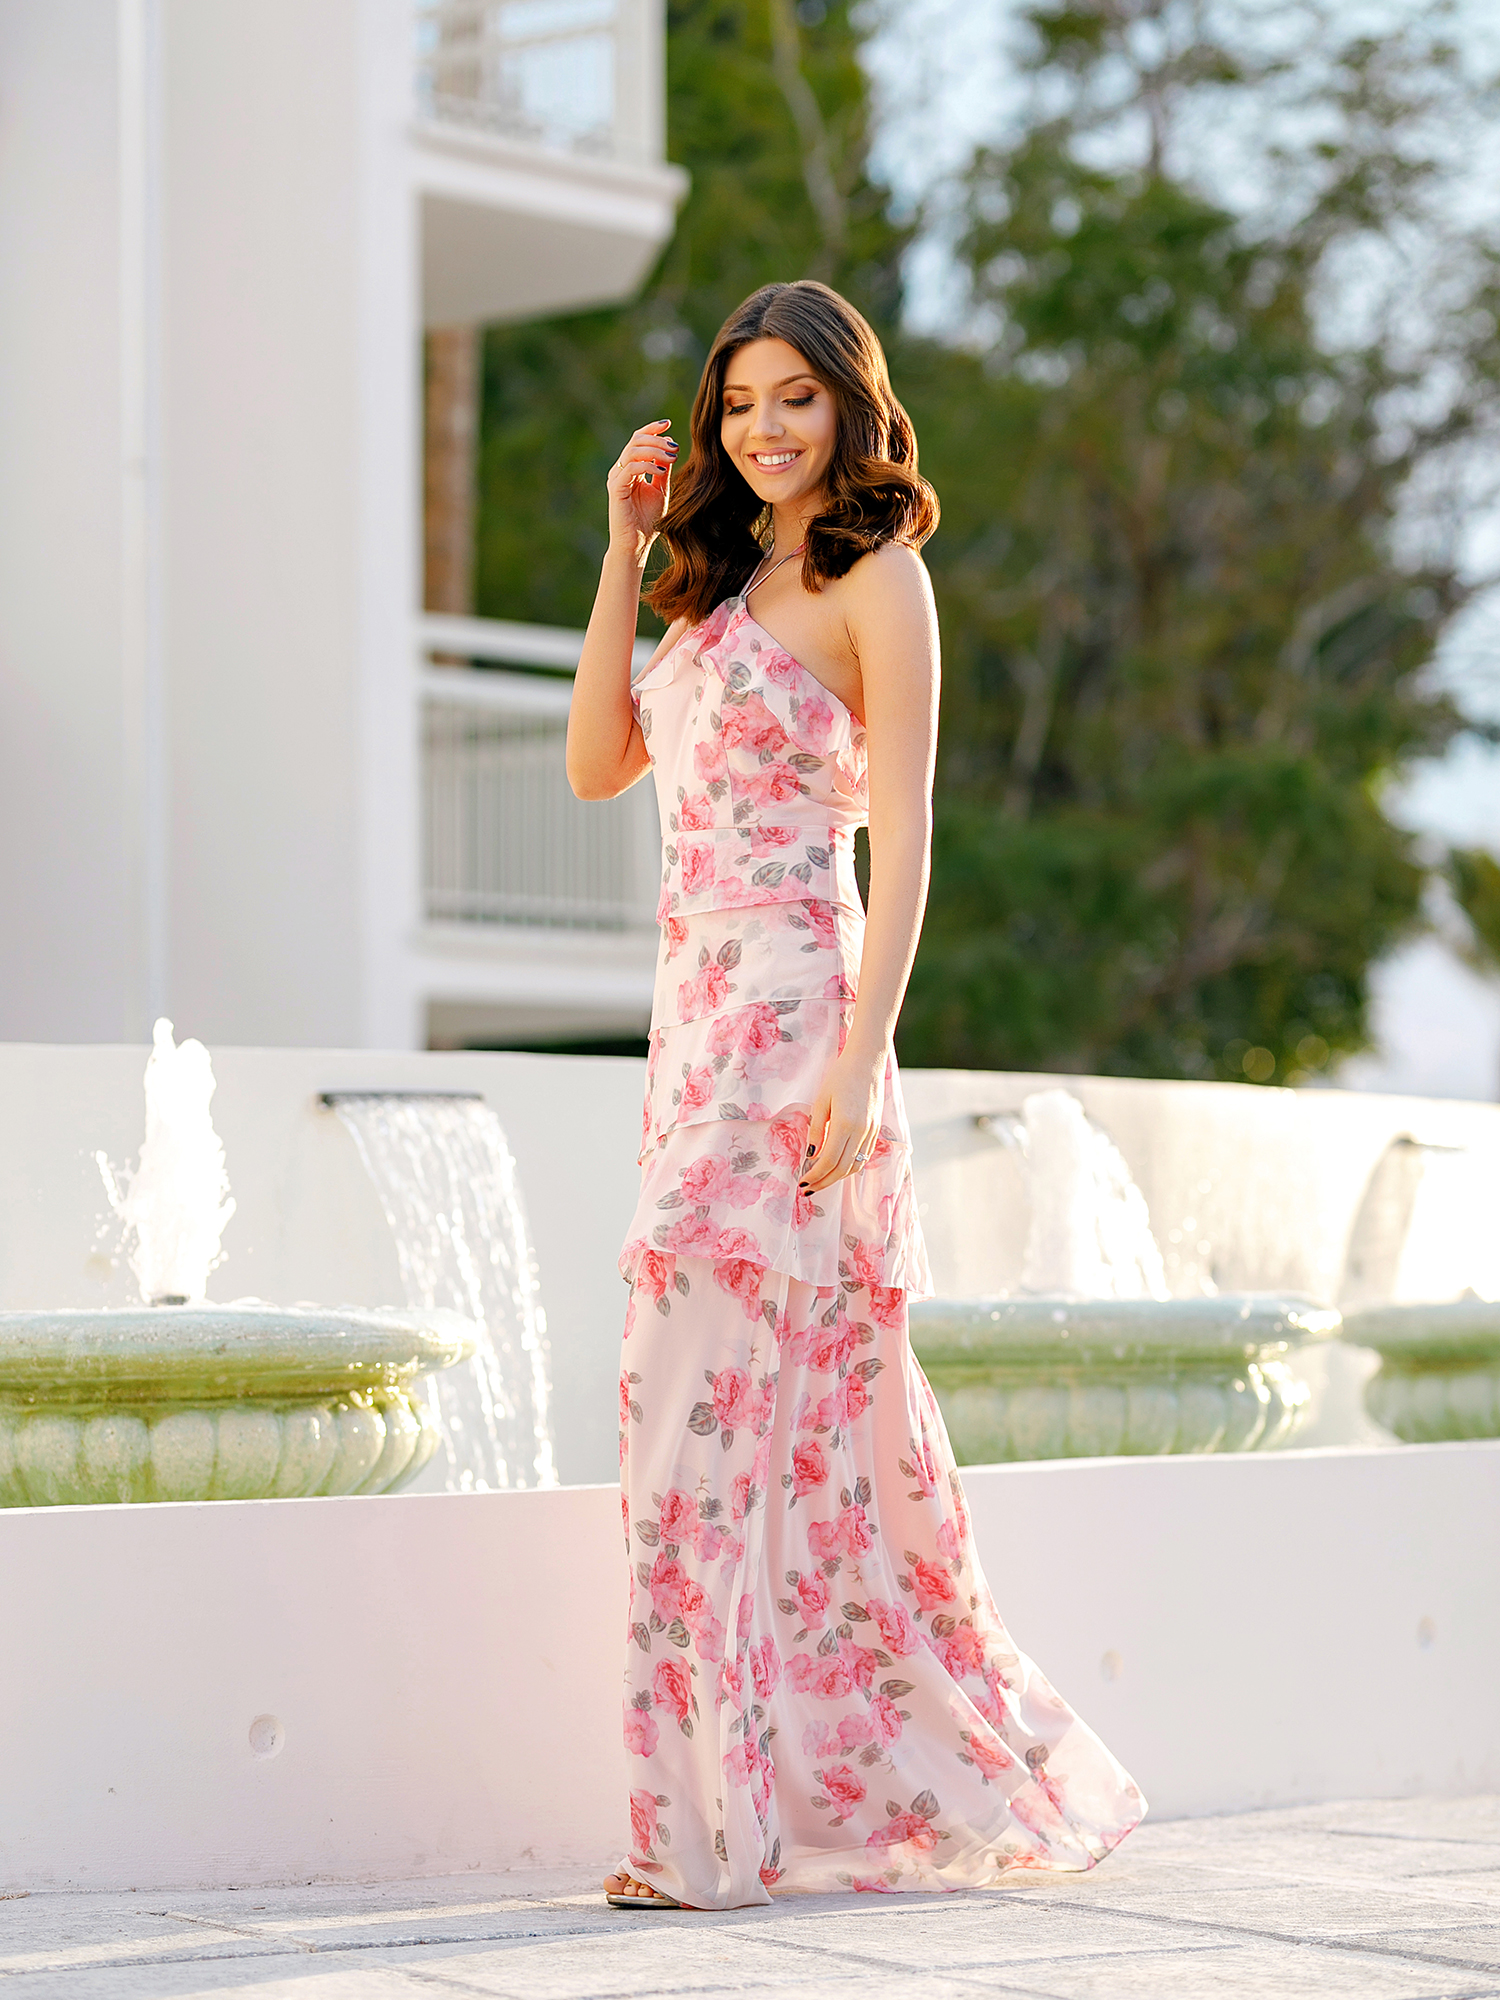 8f656c320d8 Ever-pretty - Ever-Pretty Women s Full-Length Halter Neck Floral Print  Summer Cocktail Party Beach Wedding Guest Dress for Women 07239 Pink US 6 -  Walmart. ...